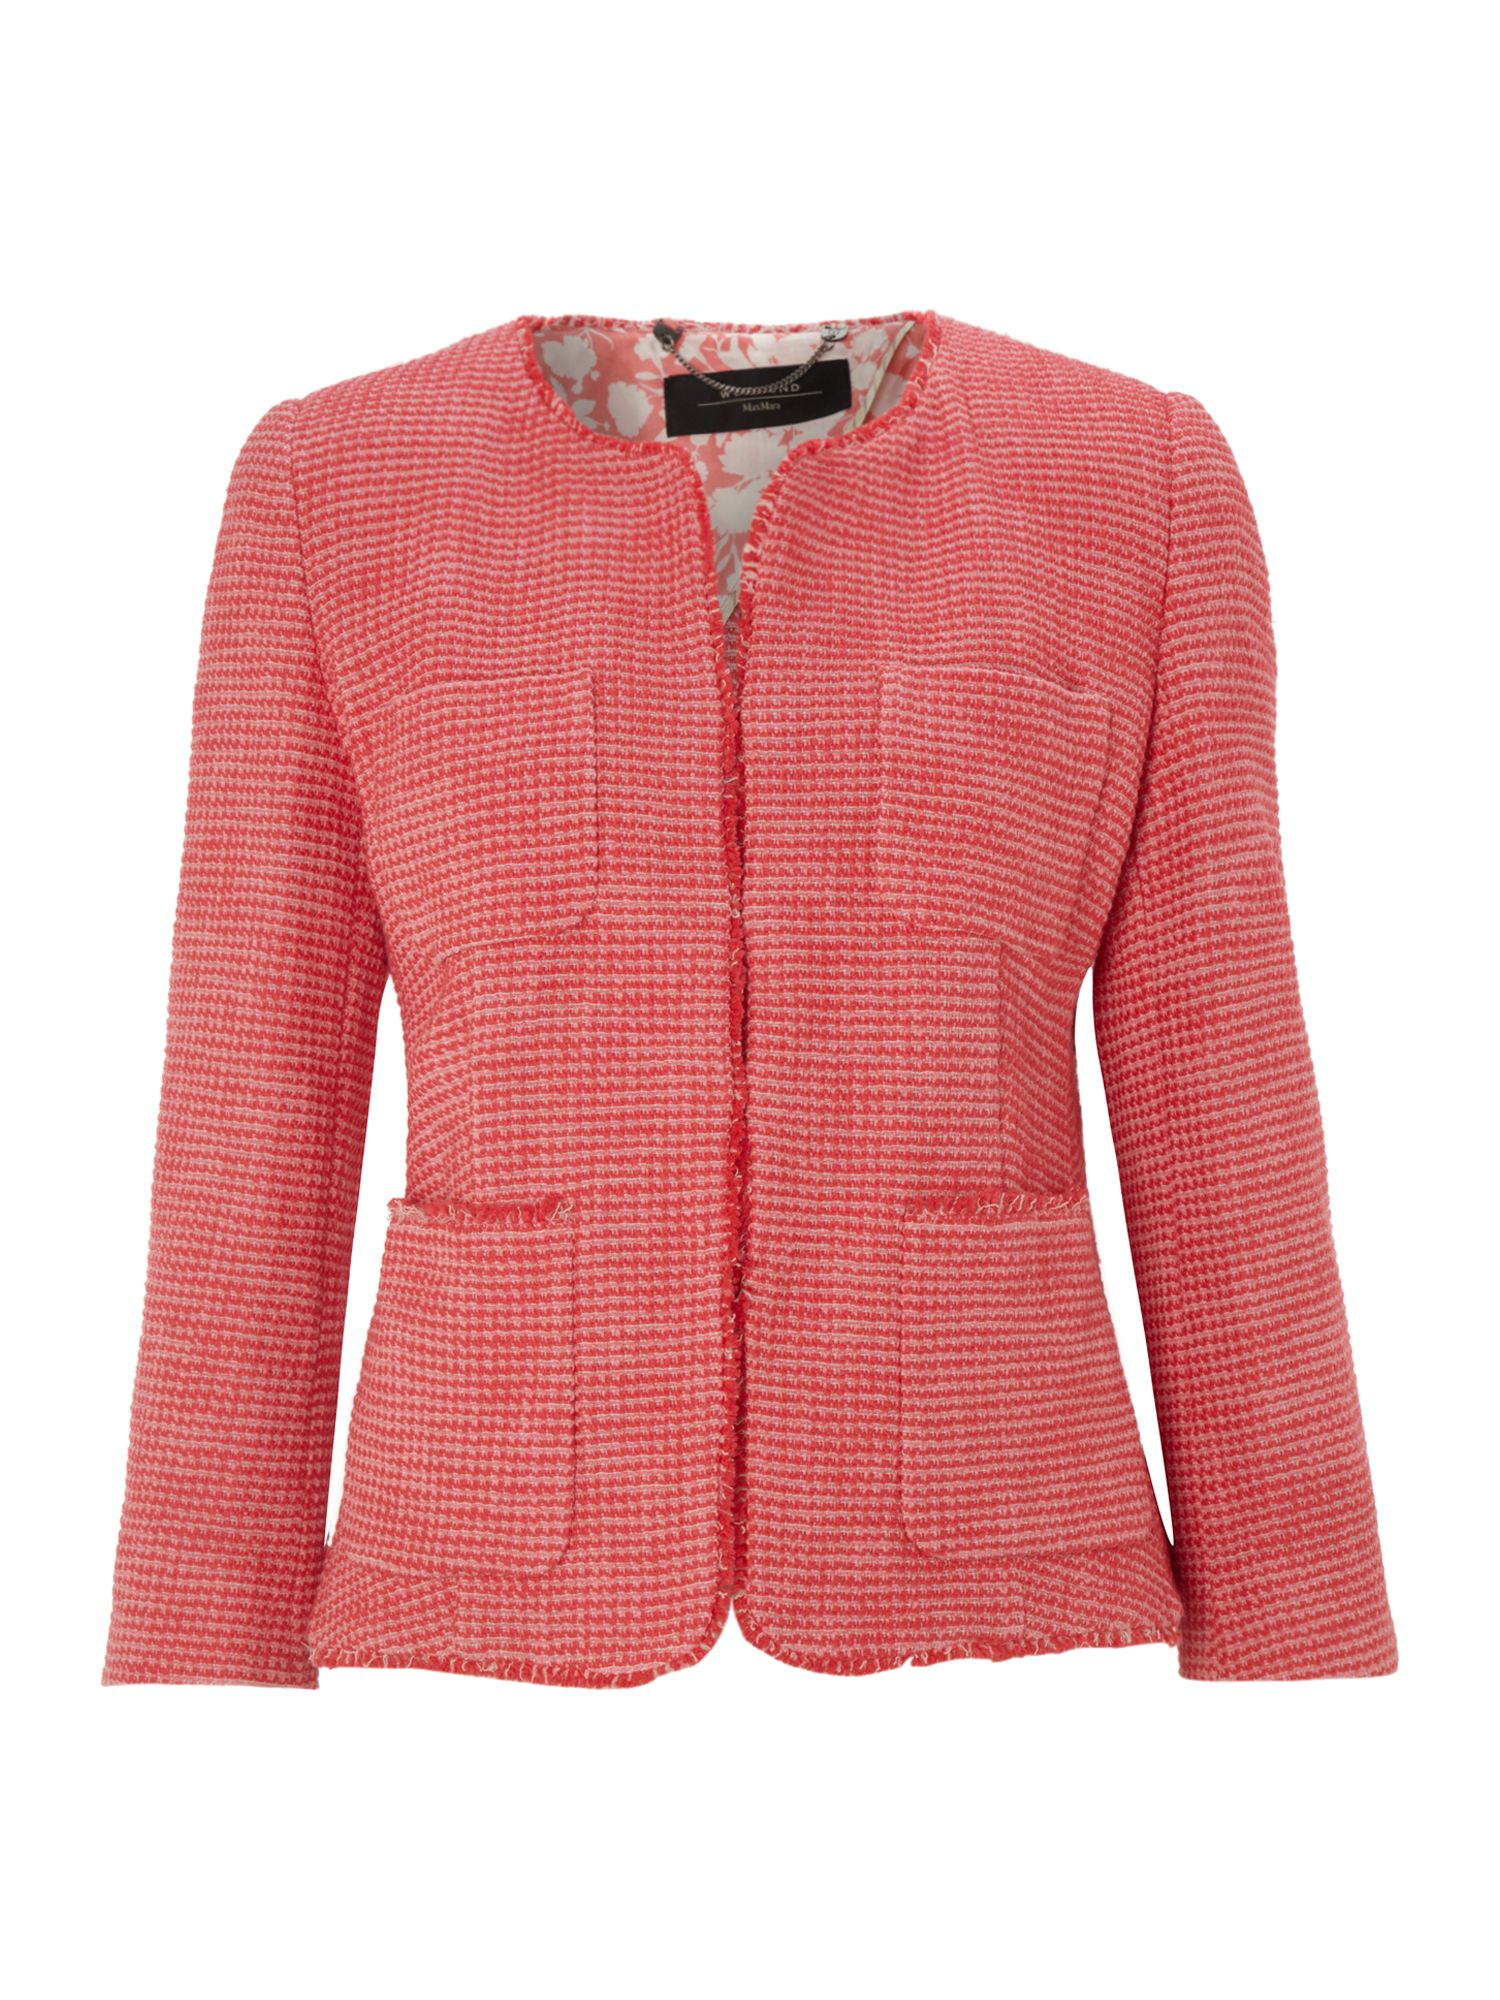 Weekend by maxmara Mattino Frayed Boucle Jacket in Pink | Lyst